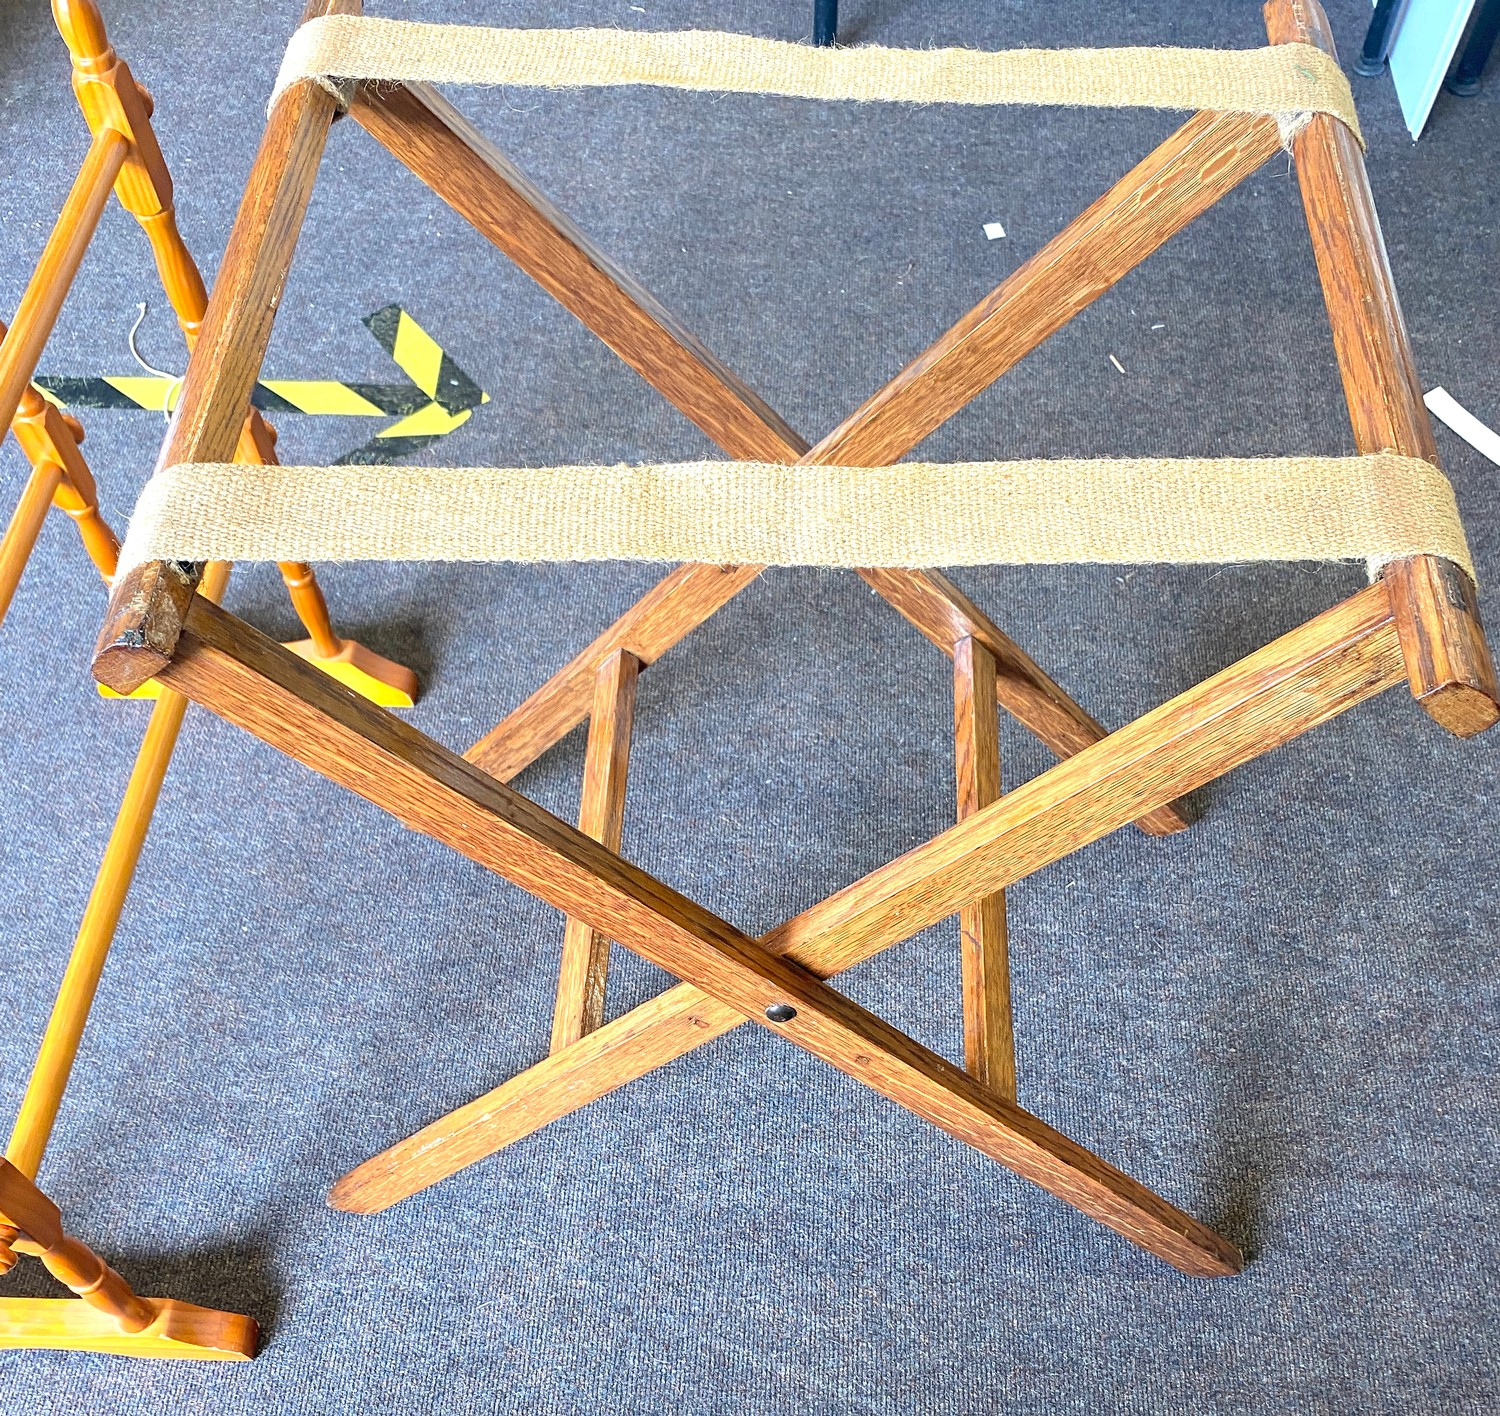 Vintage suitcase stand and a towel rail - Image 2 of 3